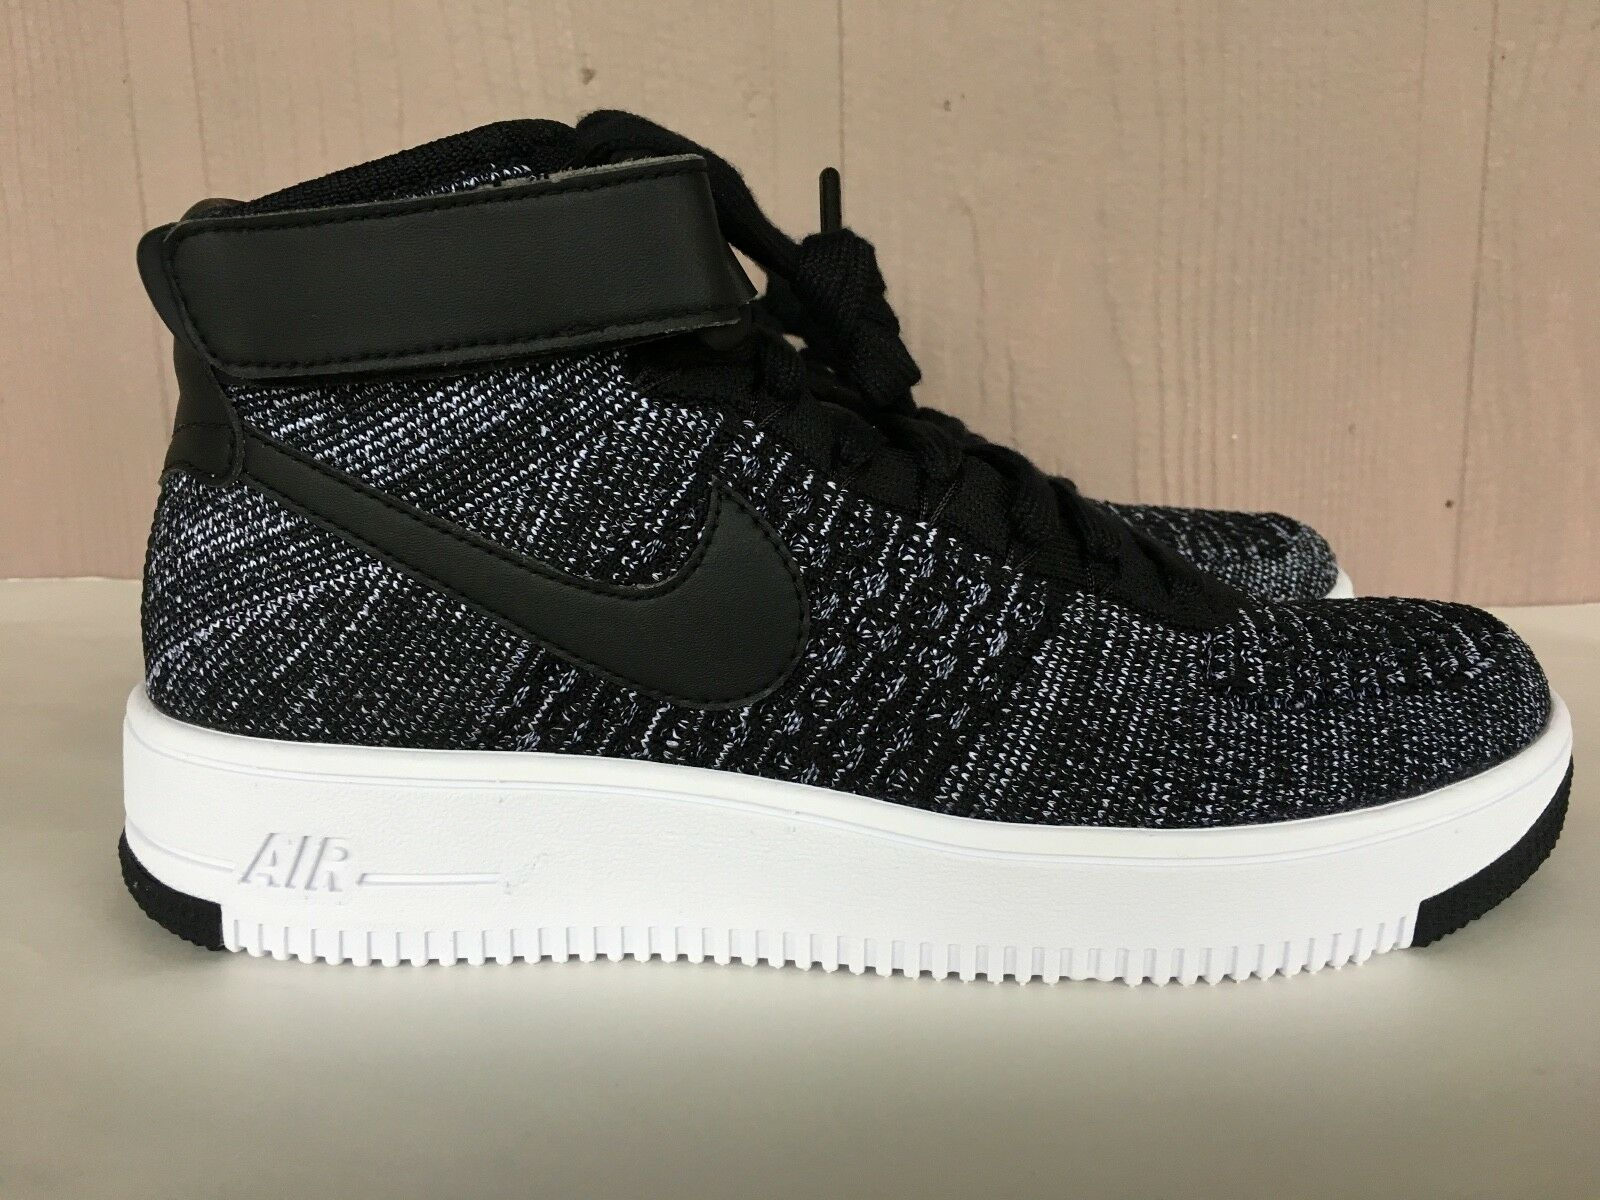 7c0a6c087 Nike Air Force 1 Shoes Ultra Flyknit GS Kids Black White Oreo Womens ...